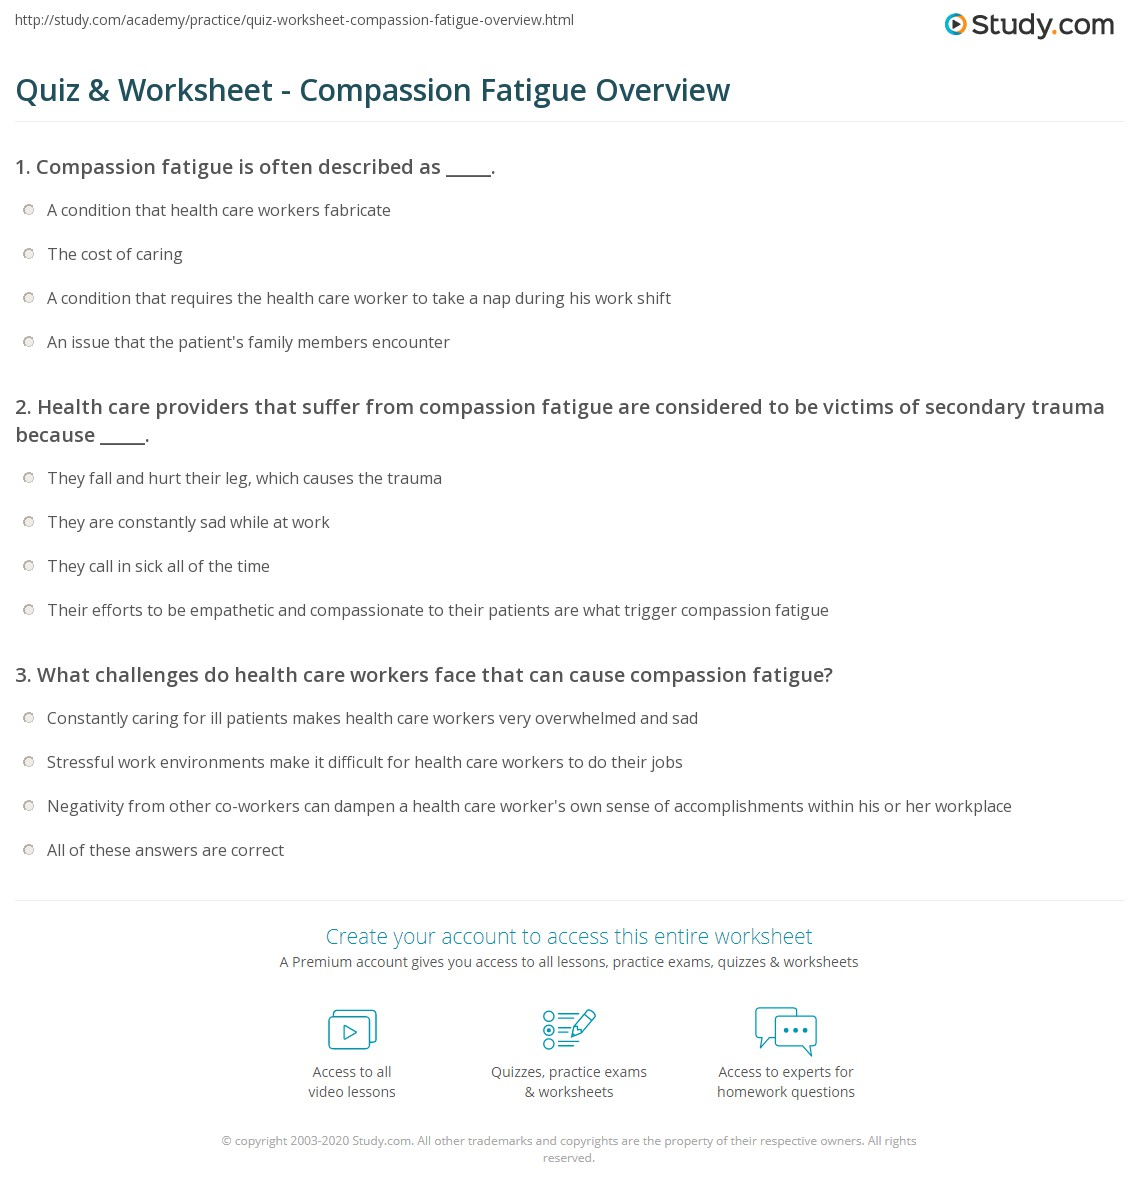 quiz & worksheet - compassion fatigue overview | study